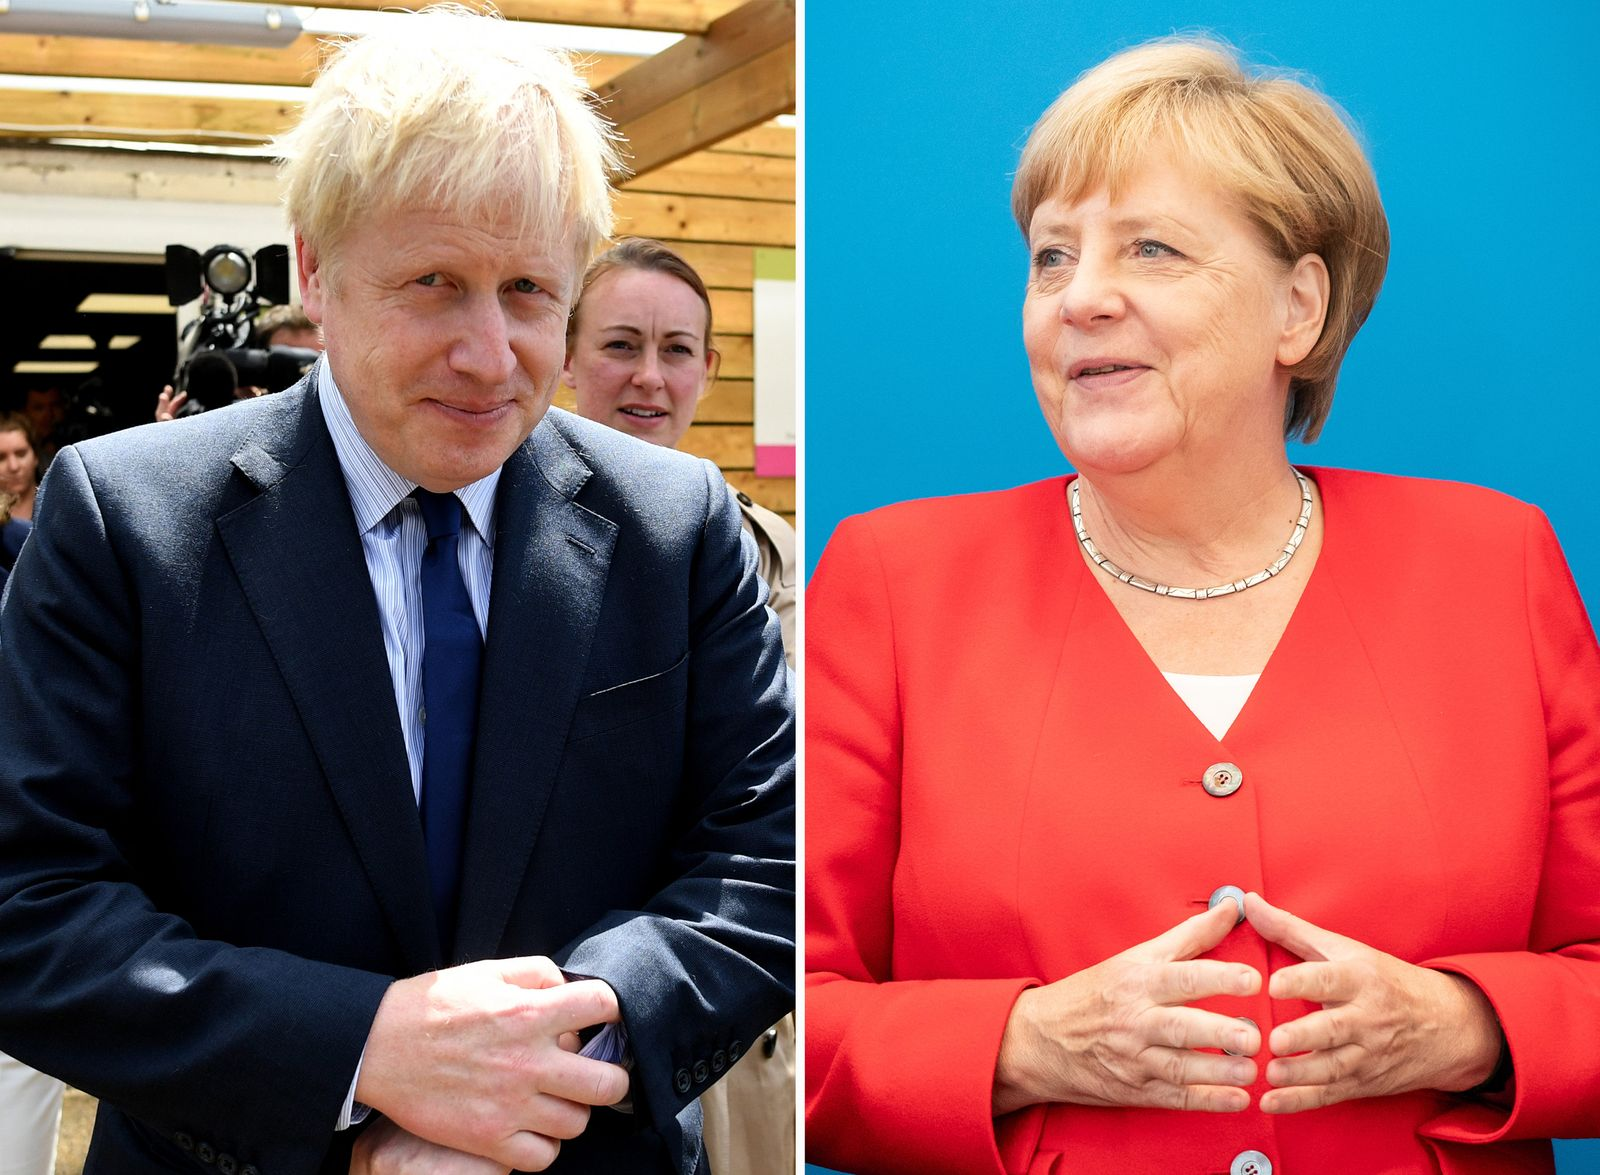 Boris Johnson / Angela Merkel